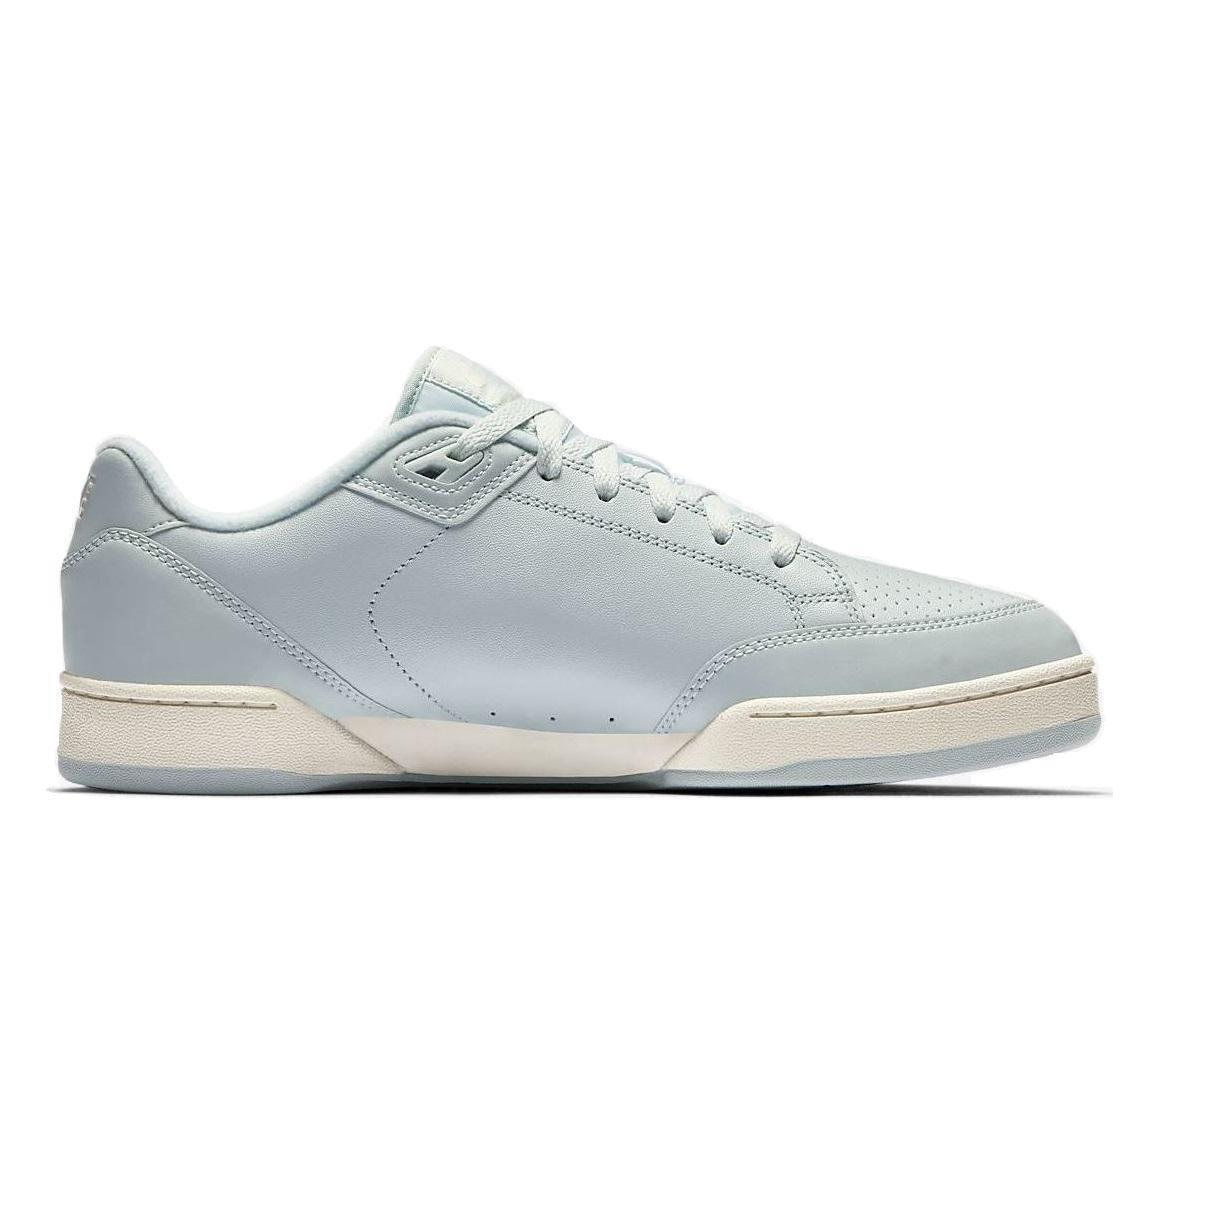 573d1cf08f8 GRANDTAND II Barely Grey Trainers AA2190 002 NIKE Mens nbyxmz2187-Athletic  Shoes. Nike Air Jordan Trainer 1 LOW 845403-003 ...